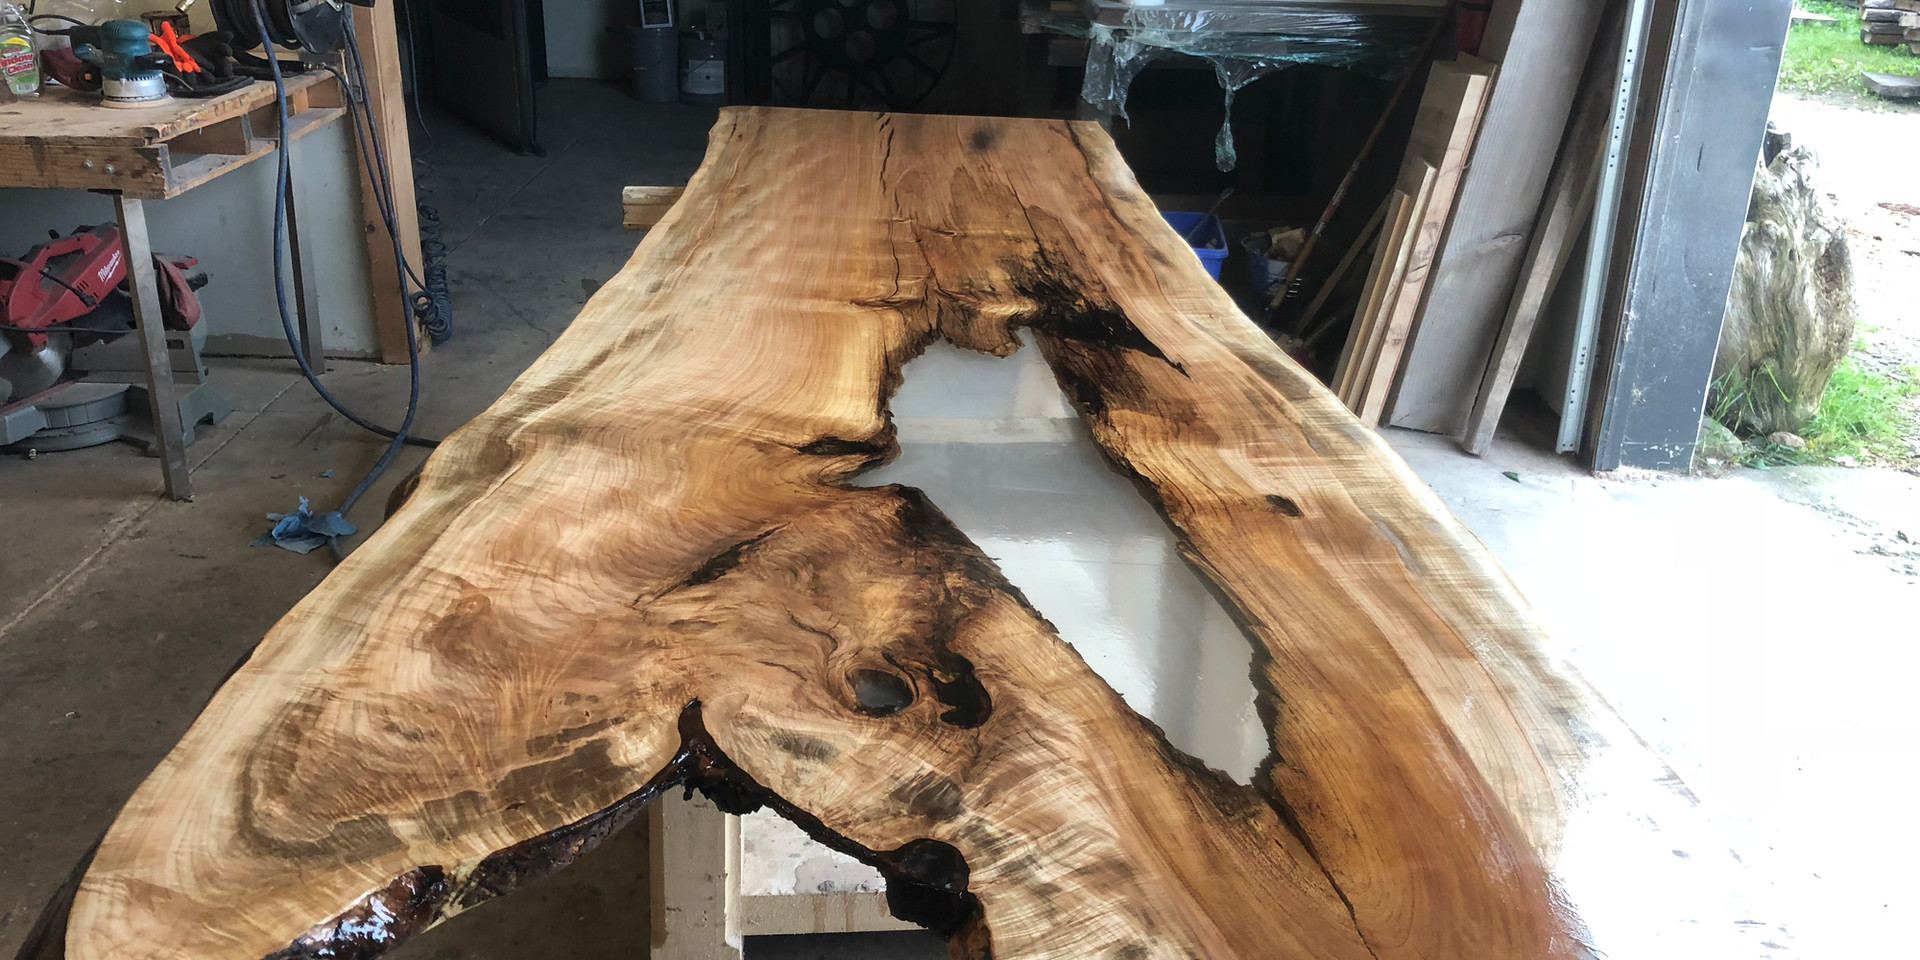 TABLE 02 - 10' SUPER RARE SINGLE SLAB MAPLE HARVEST TABLE WITH CUSTOM CLEAR RESIN INLAY RIVER TABLE